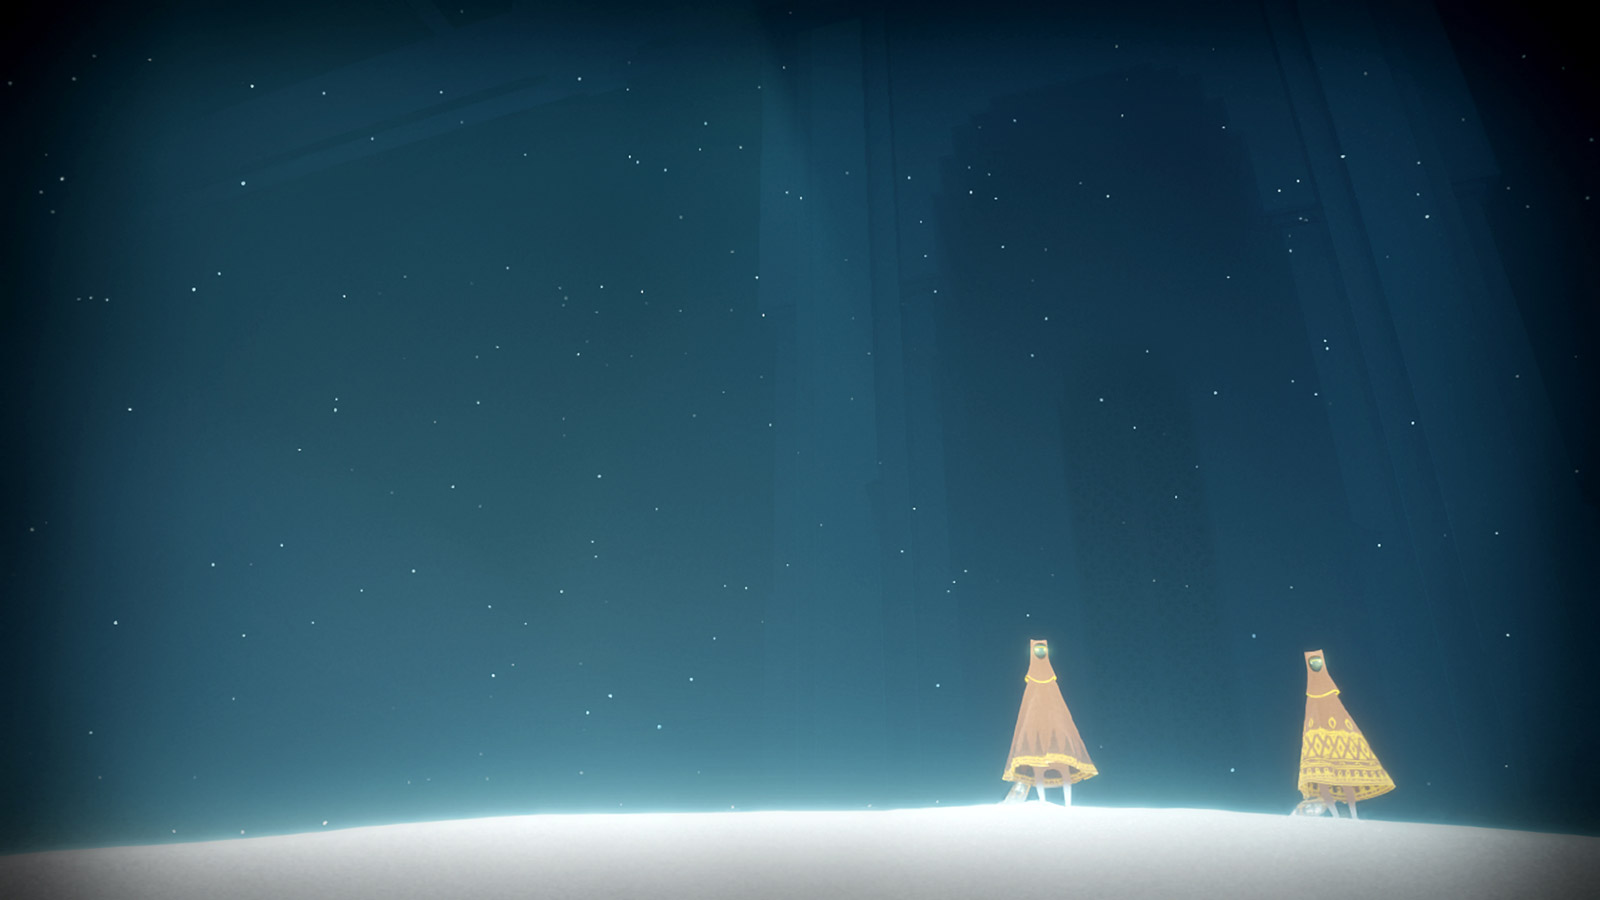 Free Journey Wallpaper in 1600x900